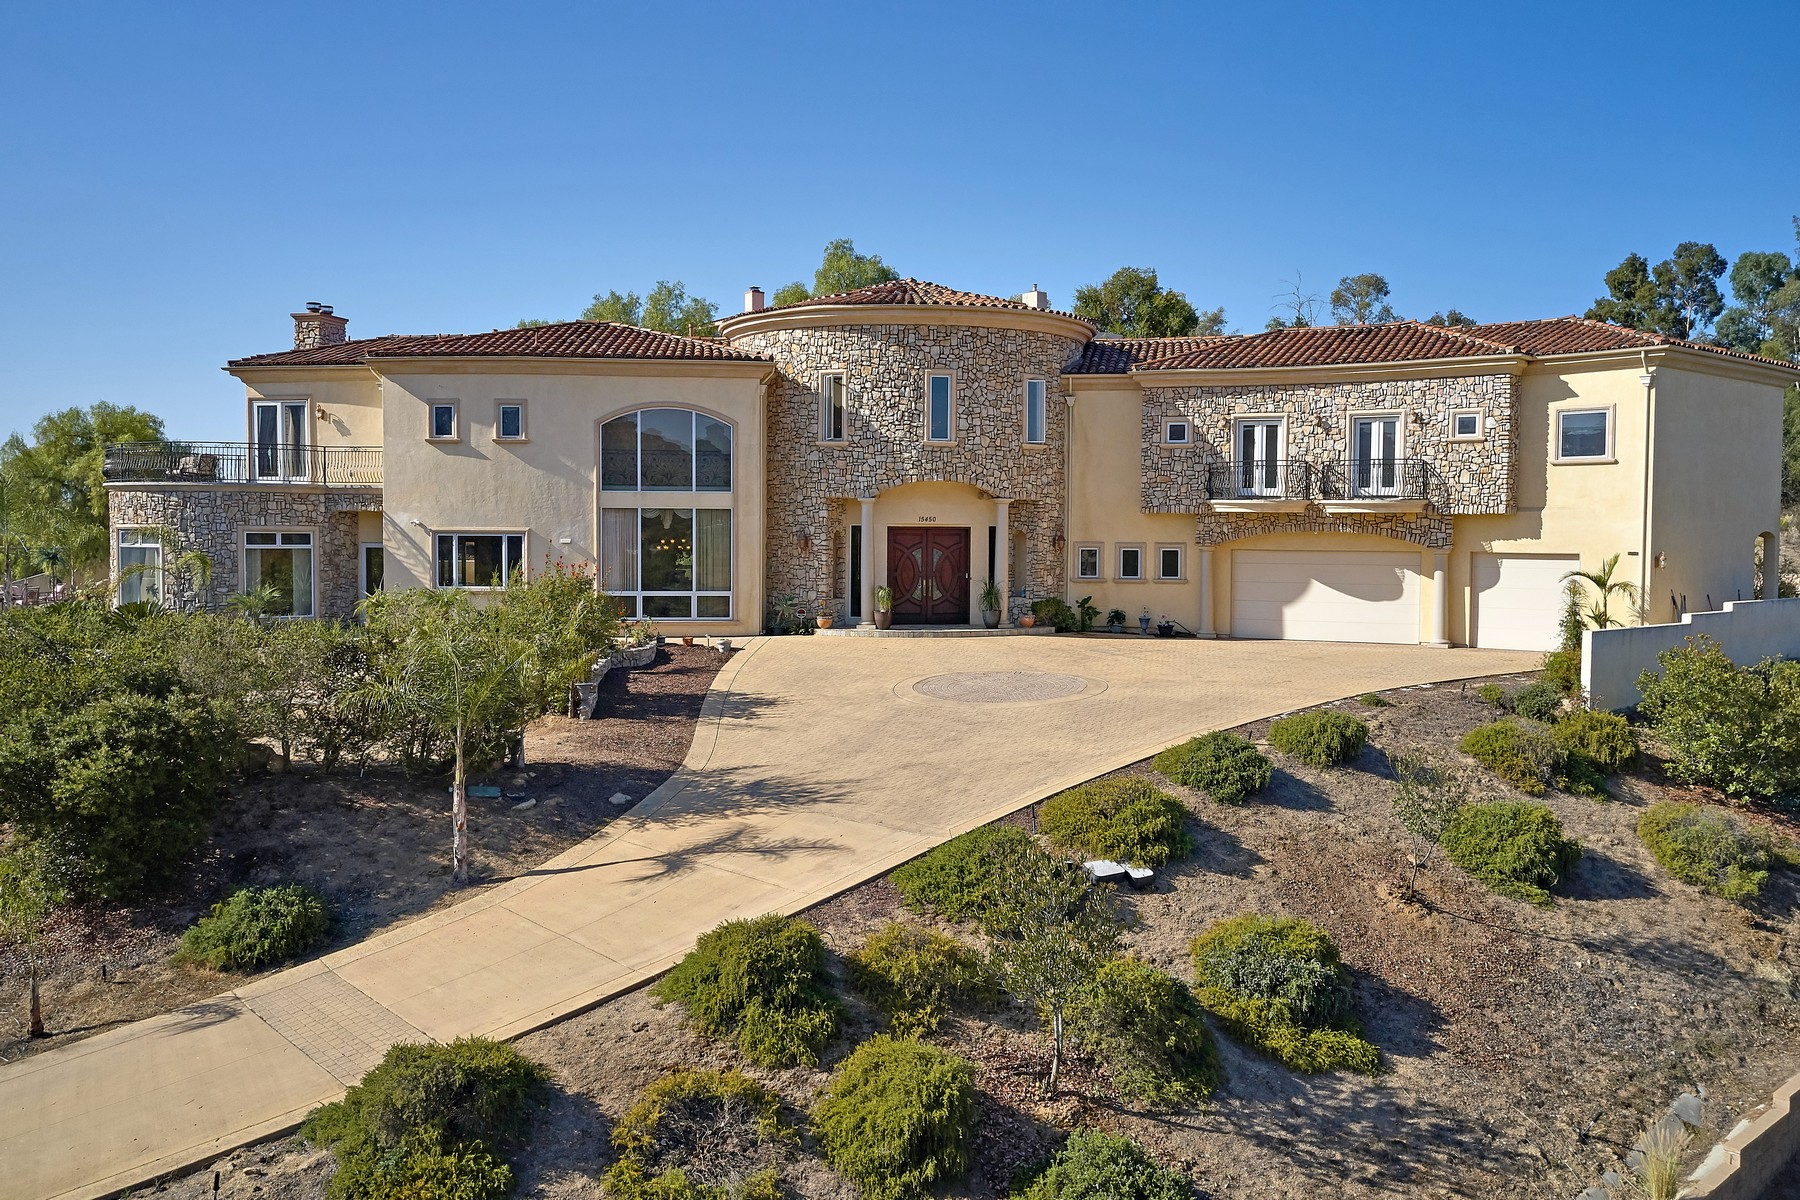 Single Family Homes for Sale at 15450 Markar Rd Poway, California 92064 United States